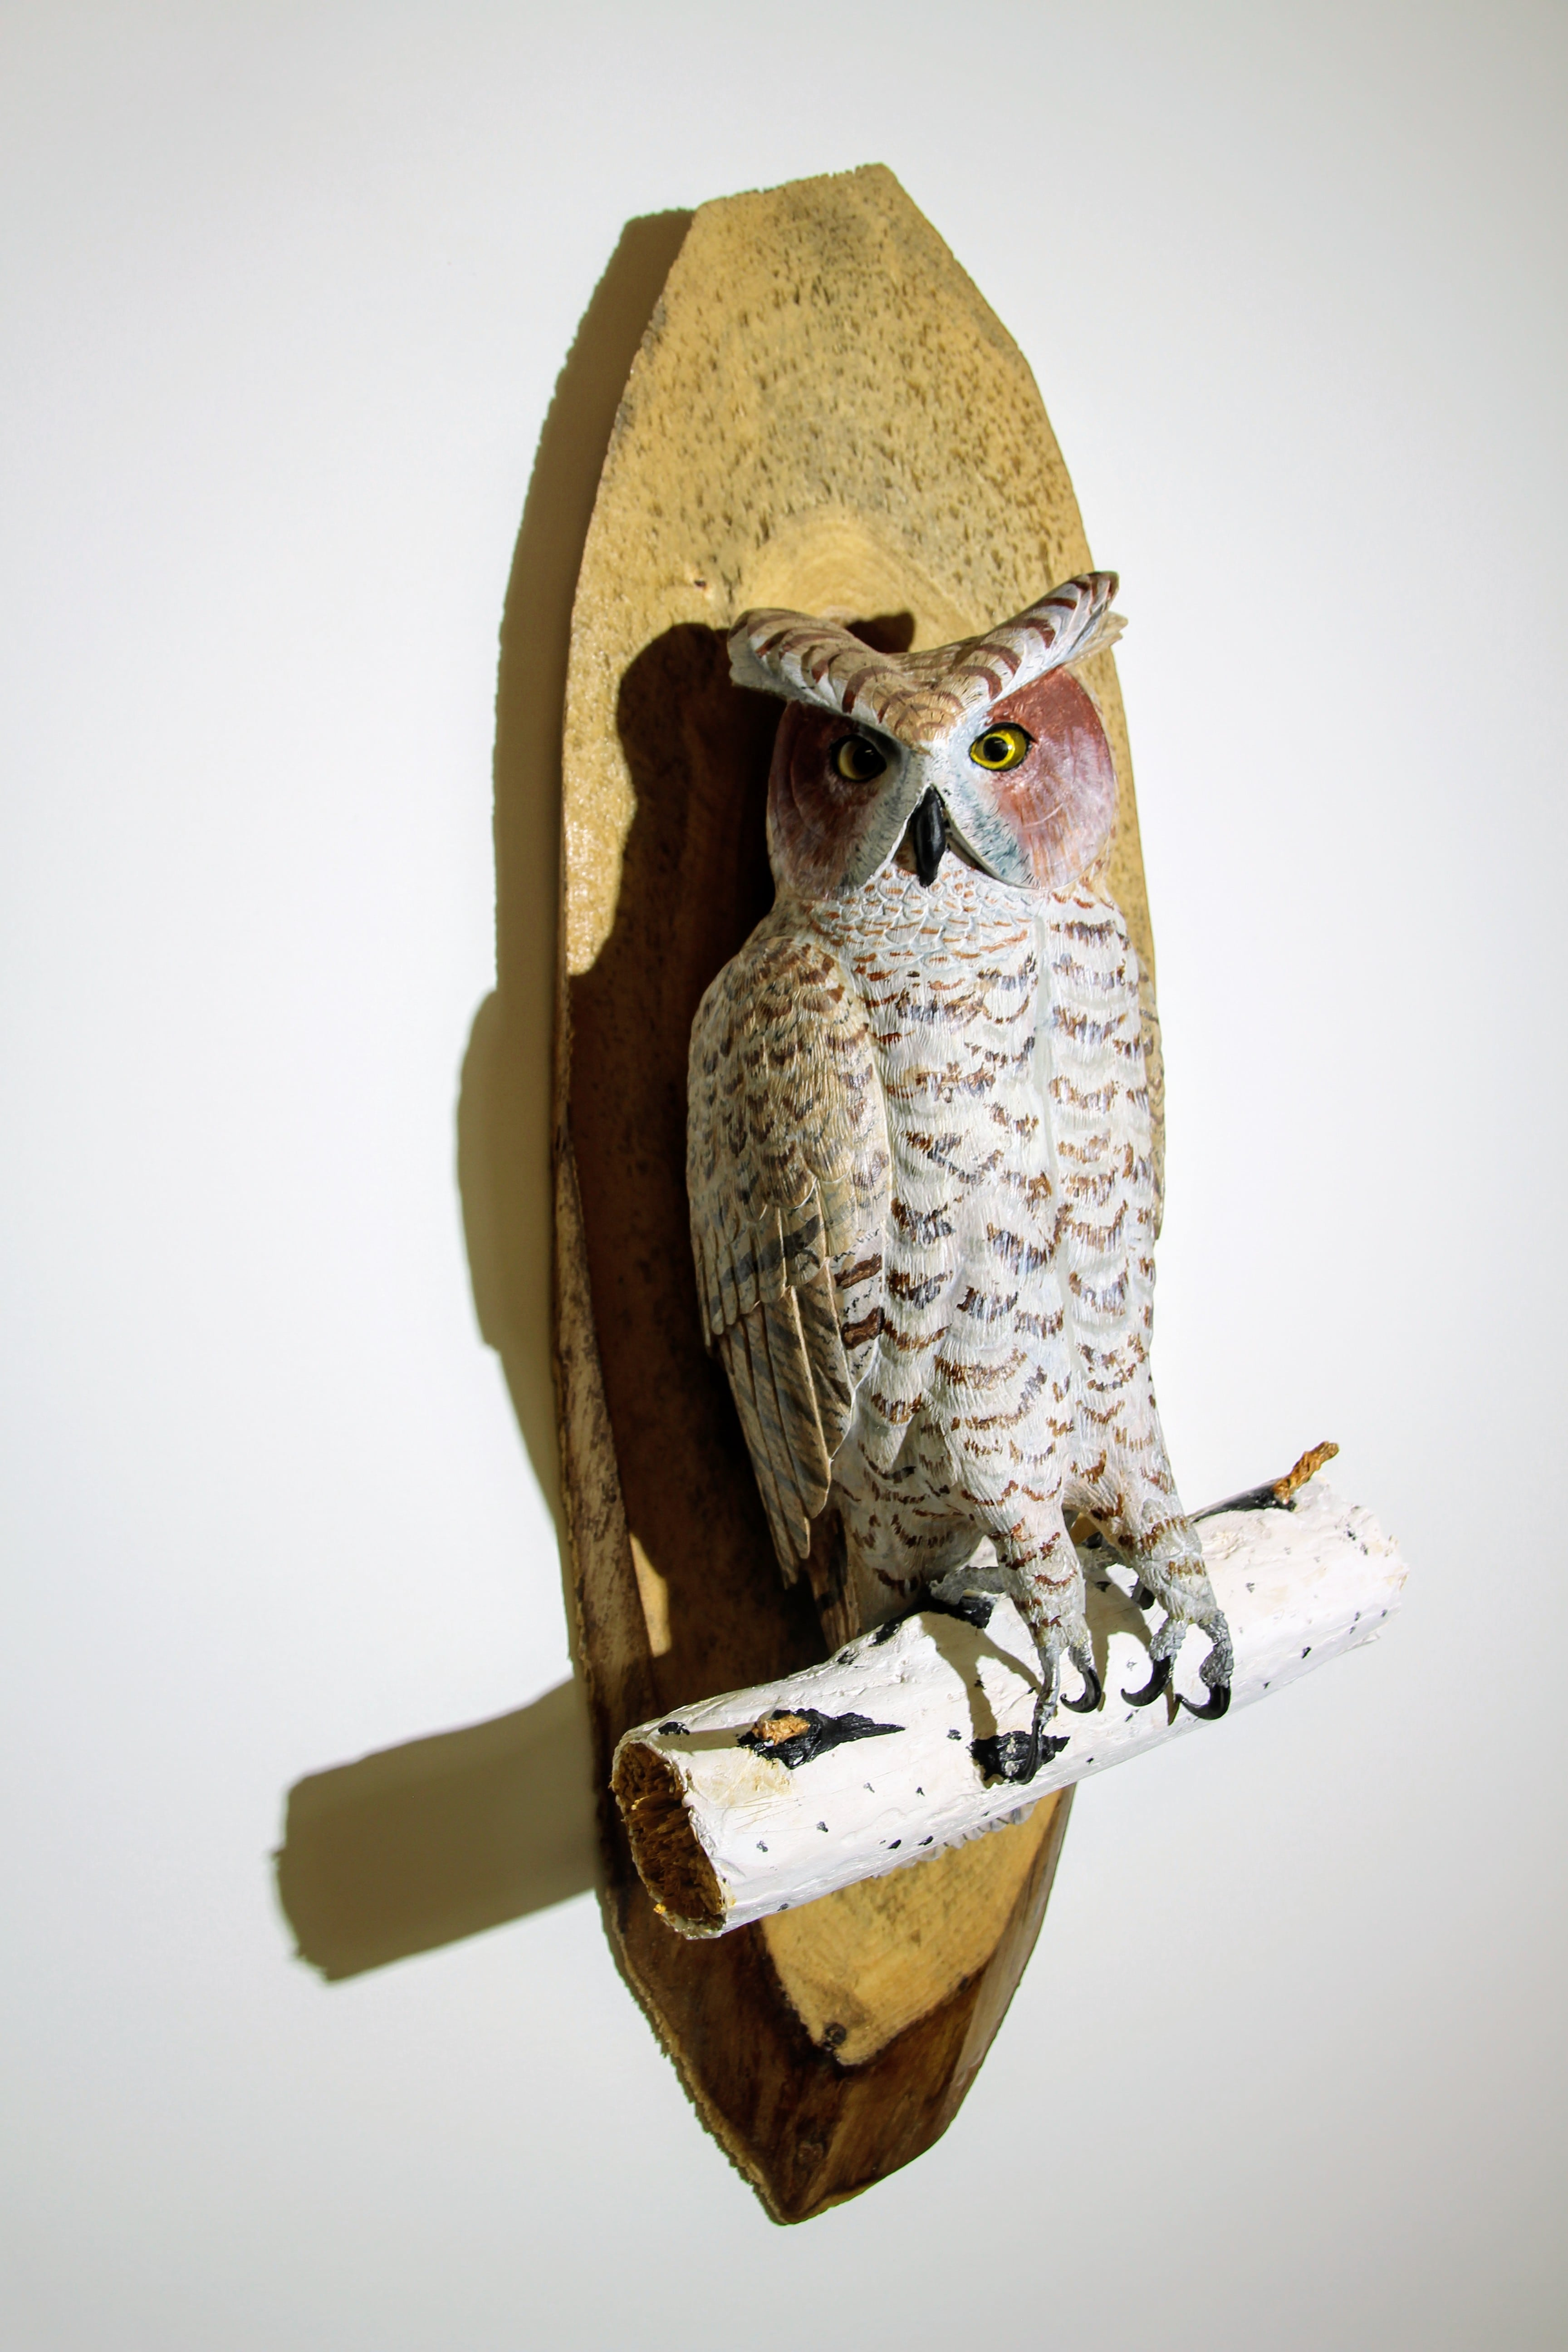 Resident Con Irving's owl carving hangs in the Fish Creek art gallery